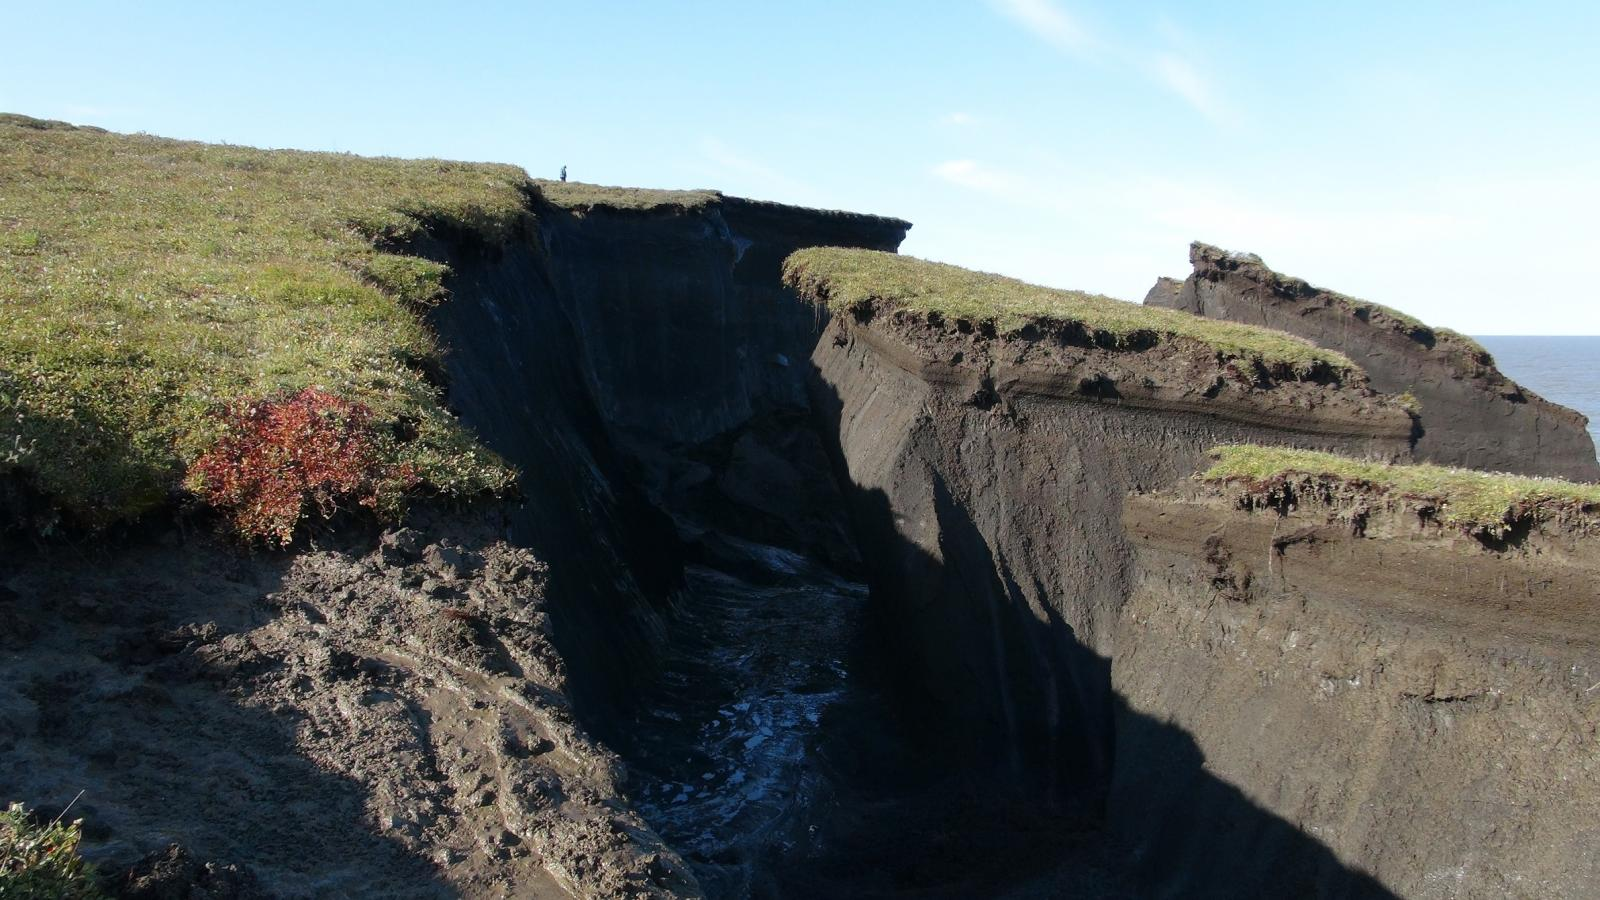 Large collapsed permafrost blocks on Pelly Island